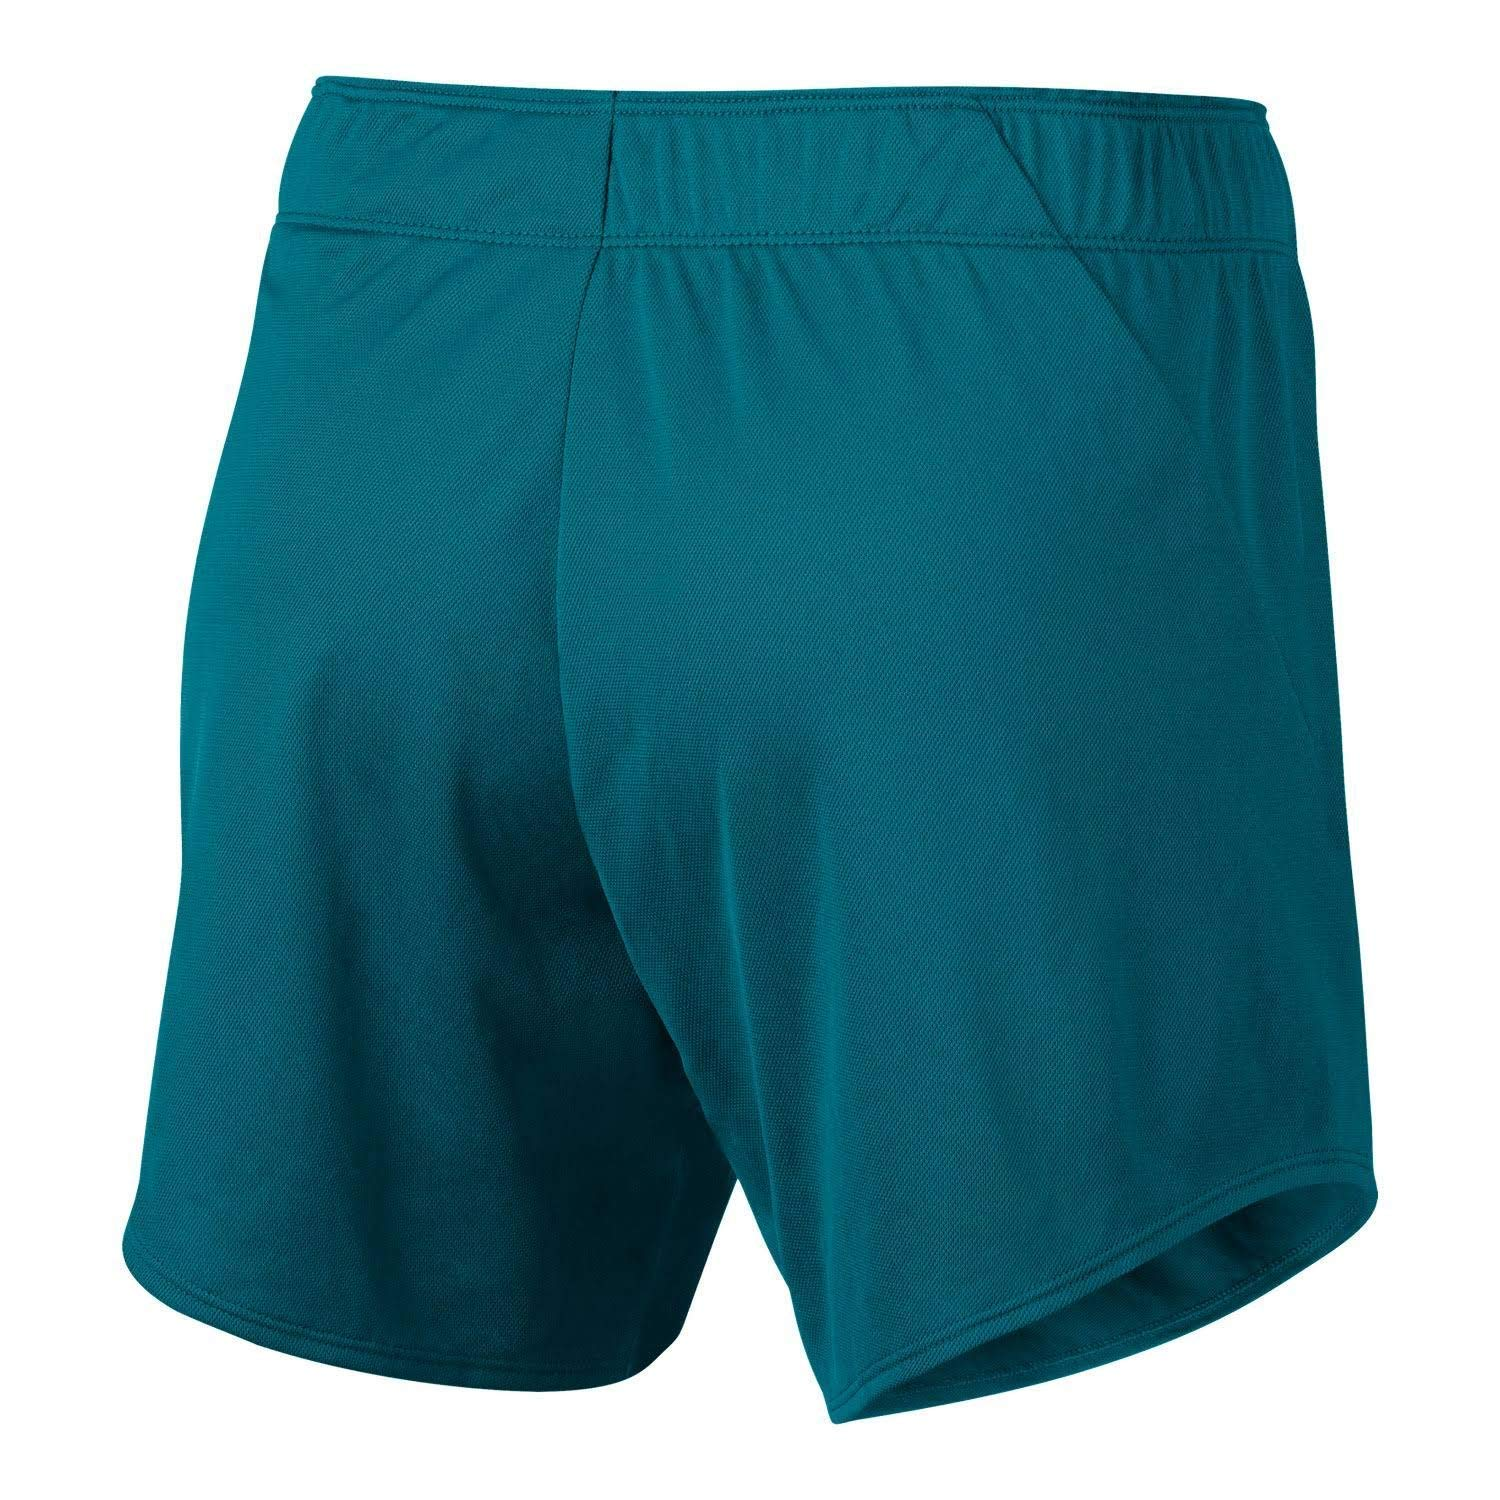 6790a454e4 Amazon.com: Nike Women's 5'' Heatherized Attack Shorts: Clothing